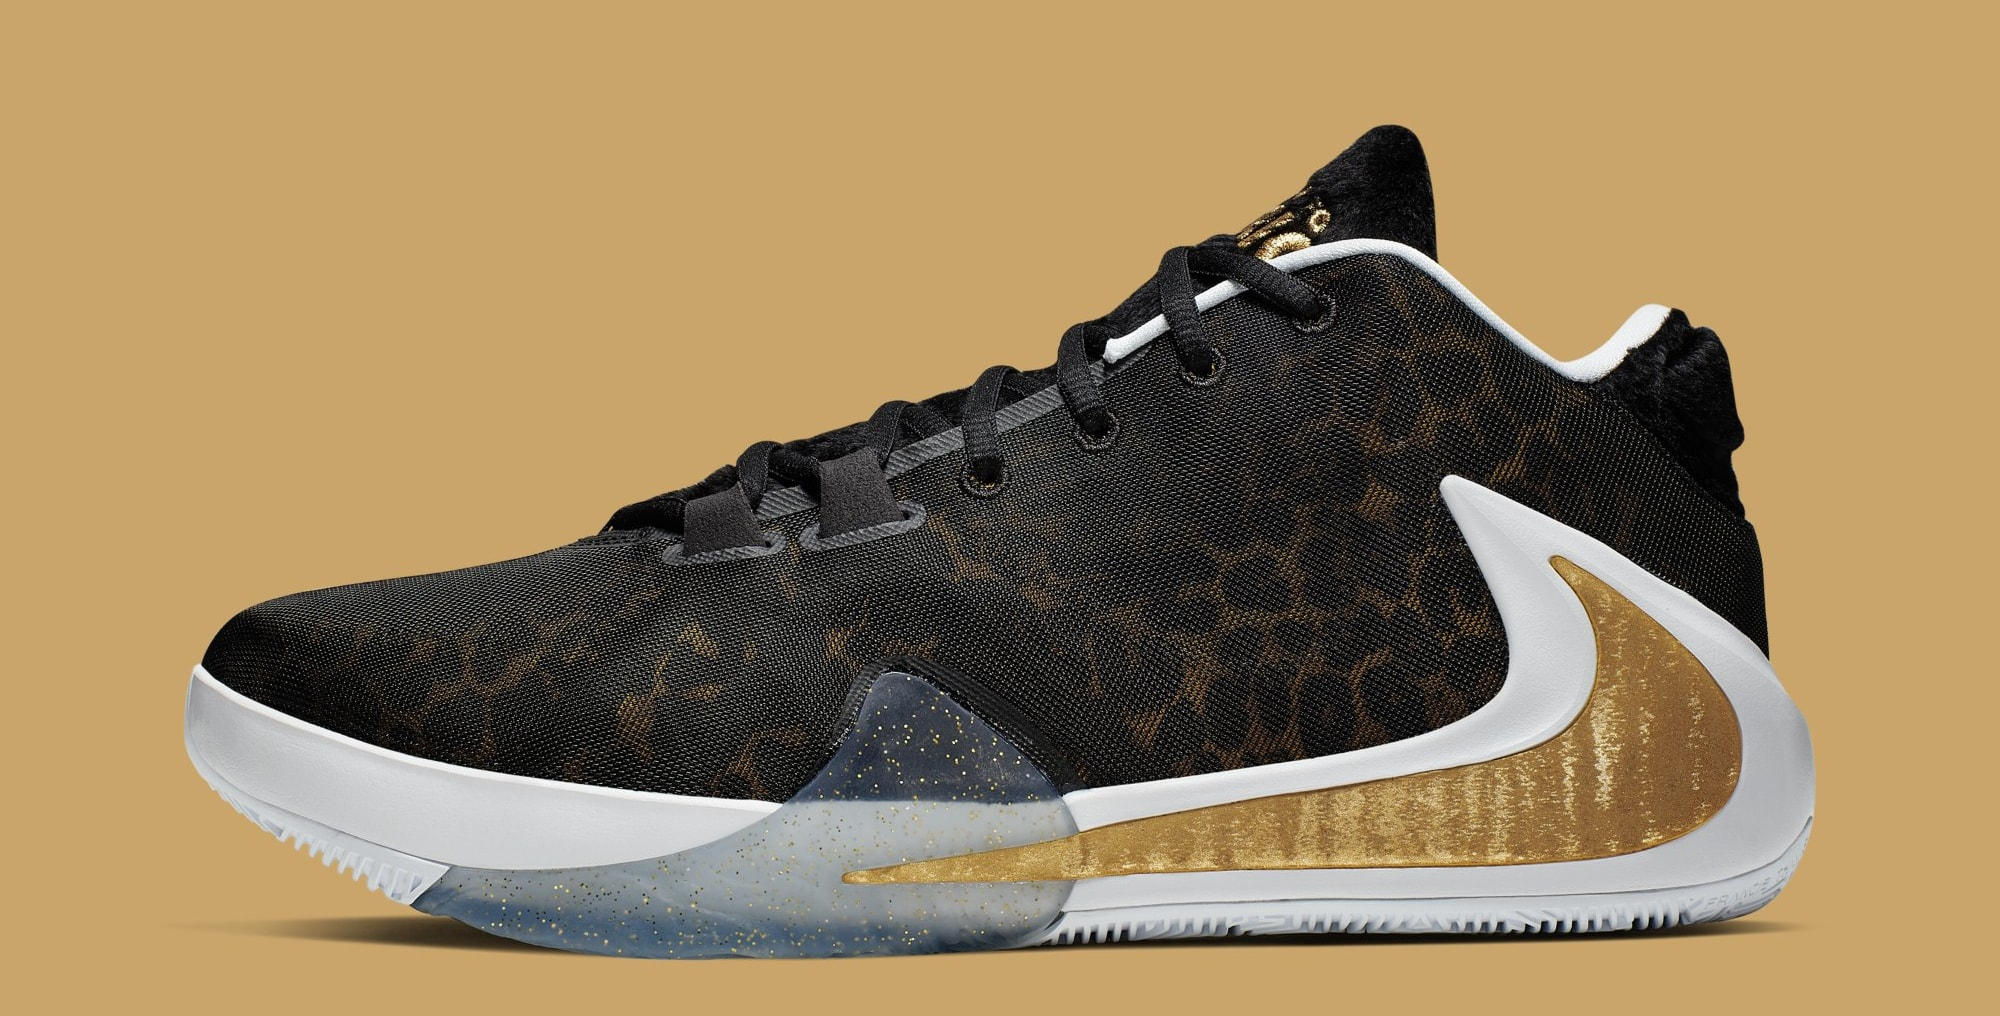 Nike Air Zoom Freak 1 'Coming to America' BQ5422-900 (Lateral)